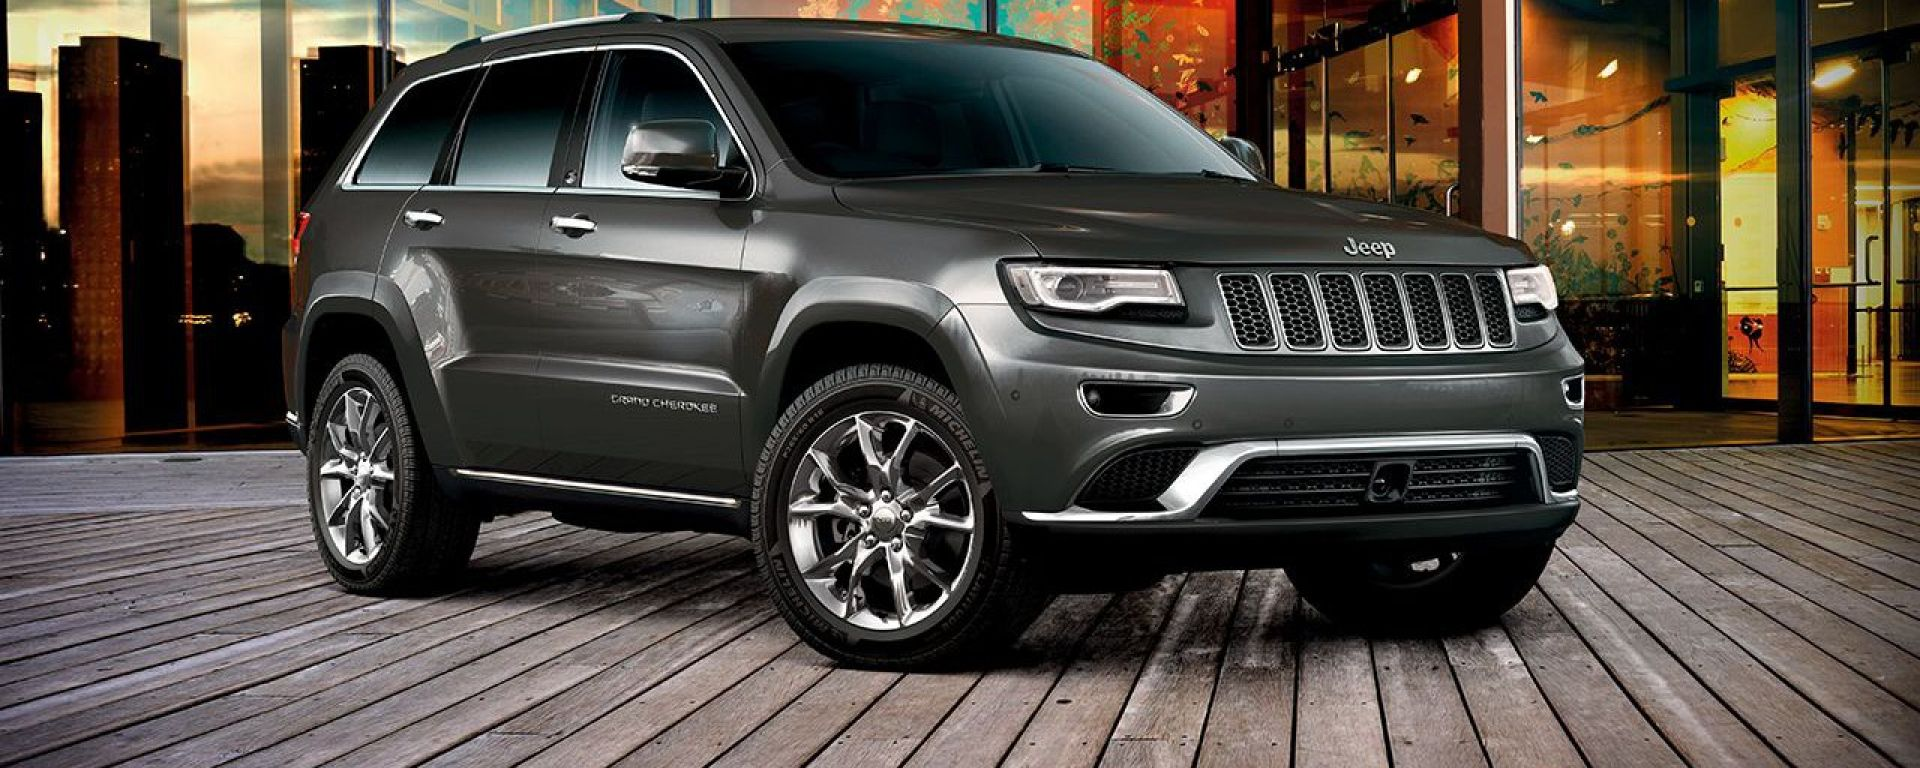 Jeep Grand Cherokee 2015: vista 3/4 anteriore